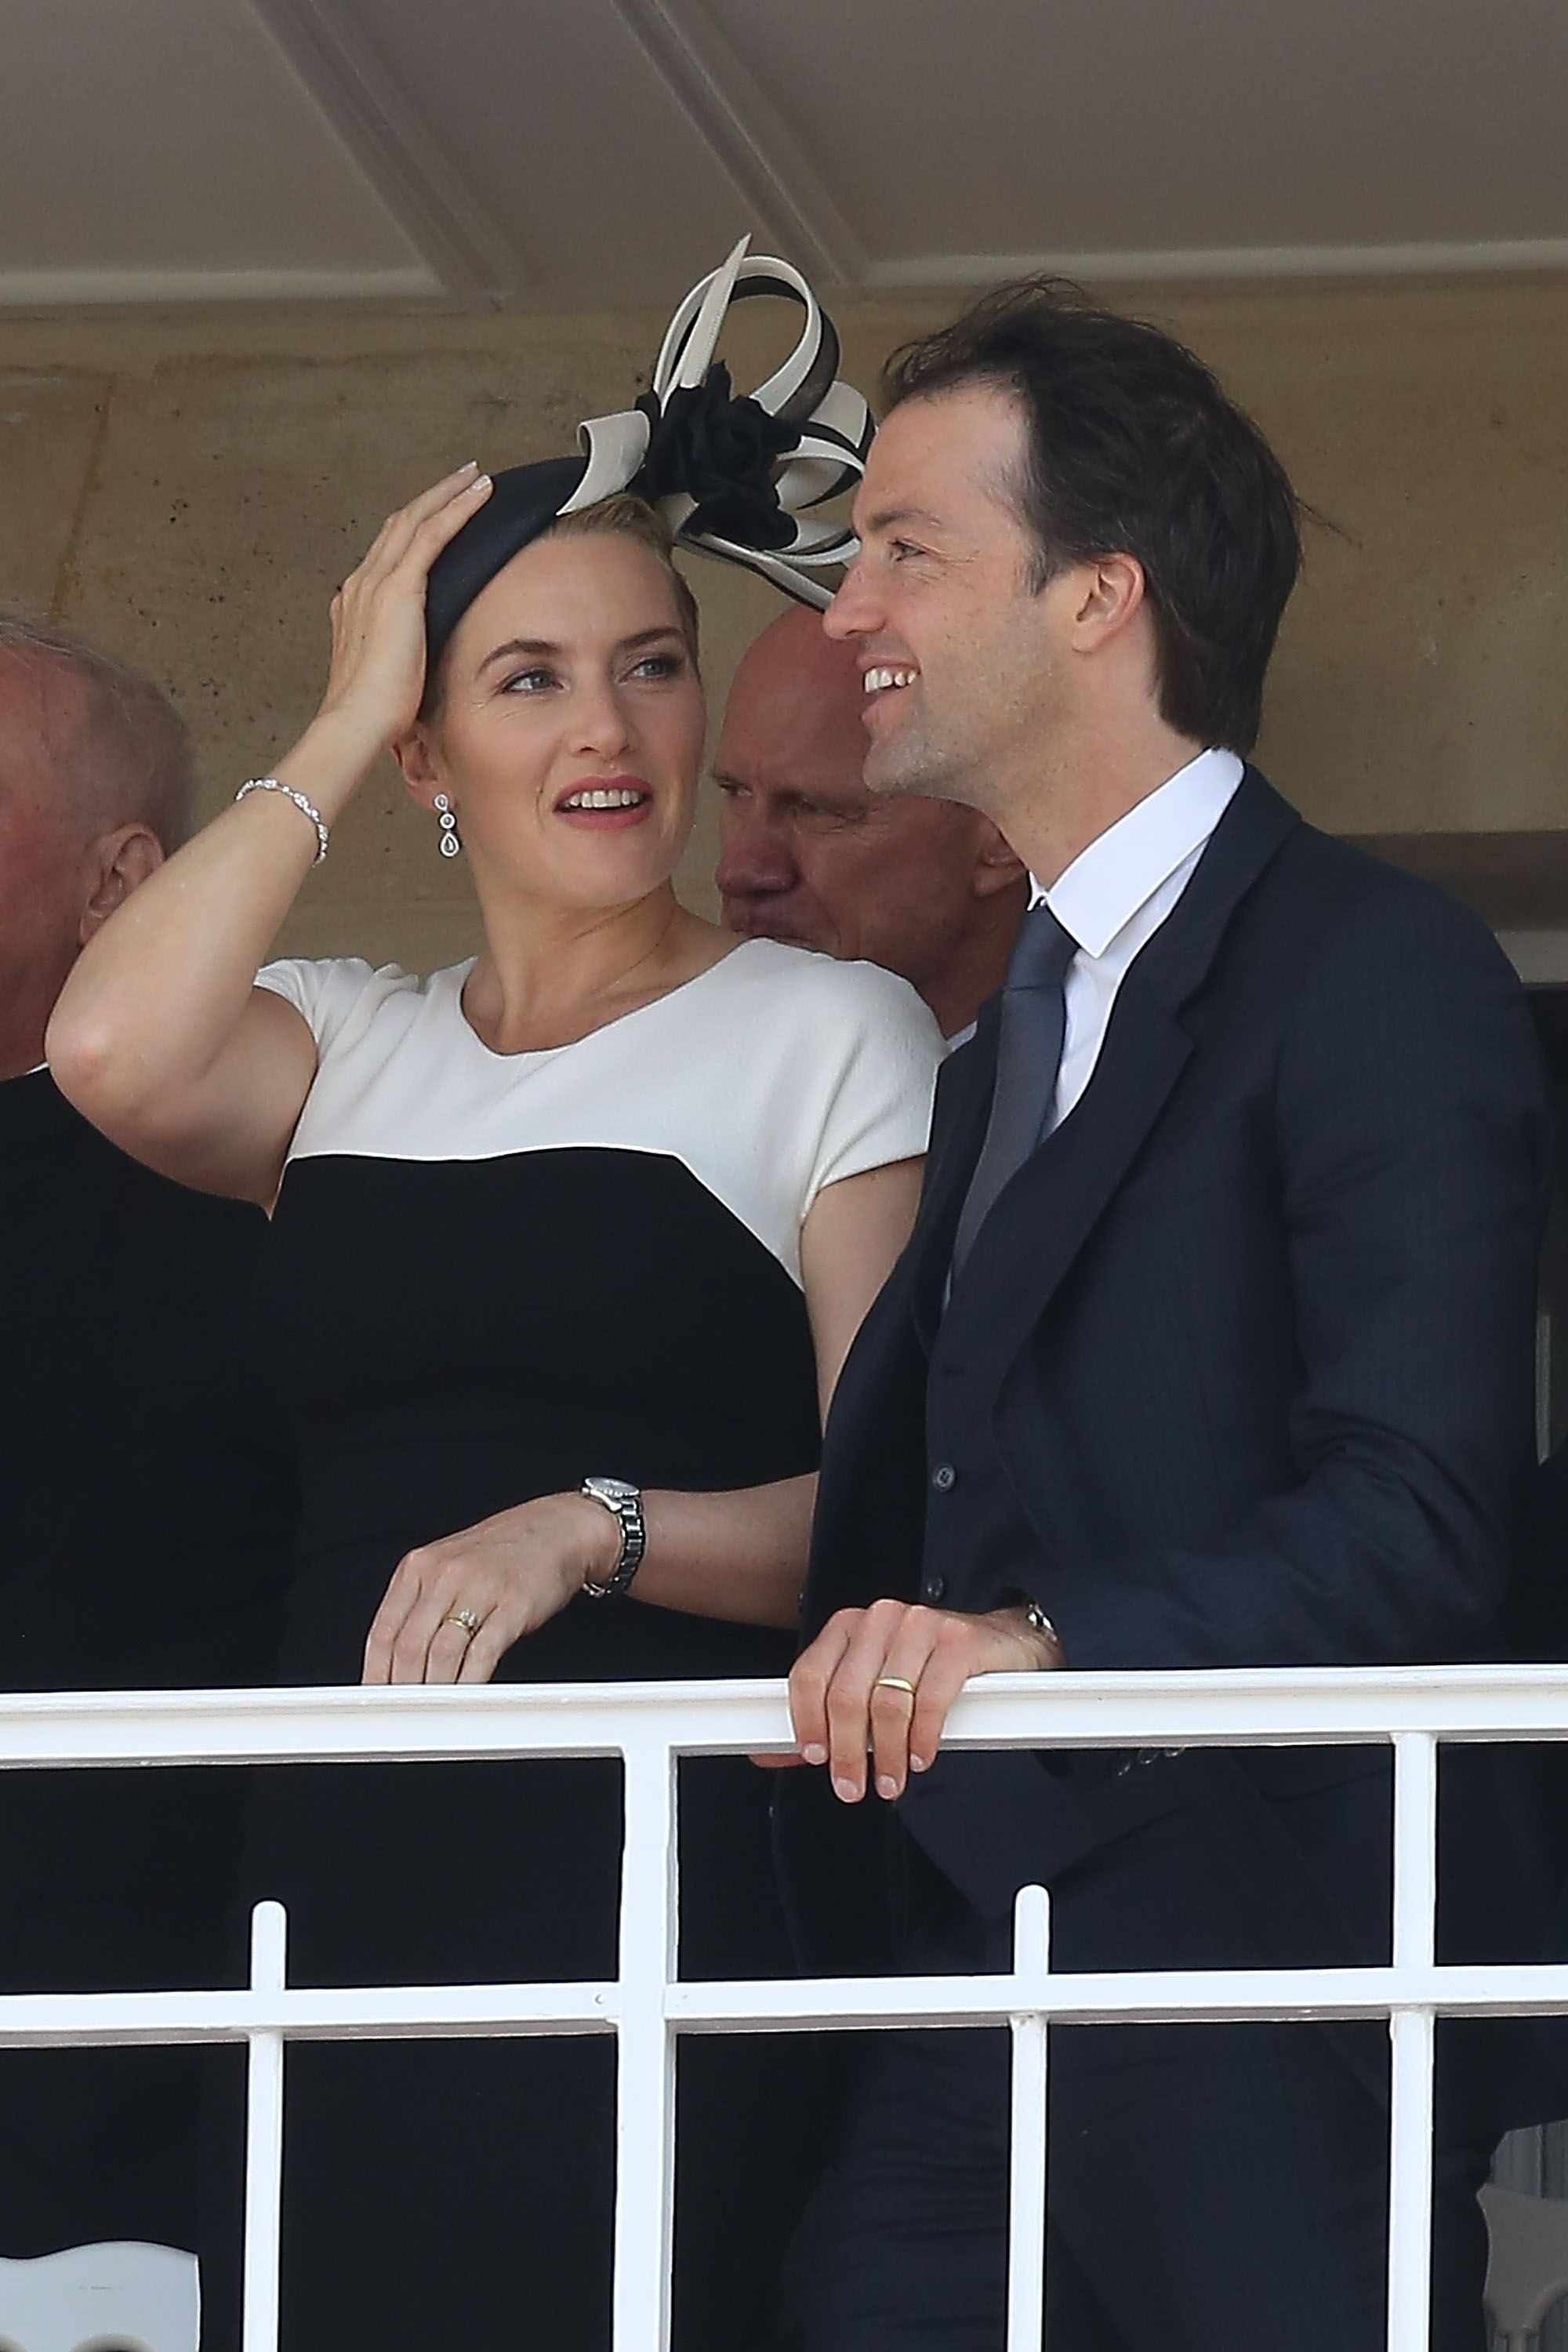 Kate Winslet and husband Ned Rocknroll at the 'Prix de Diane Longines 2014' in 2014 in Chantilly, France | Source: Getty Images